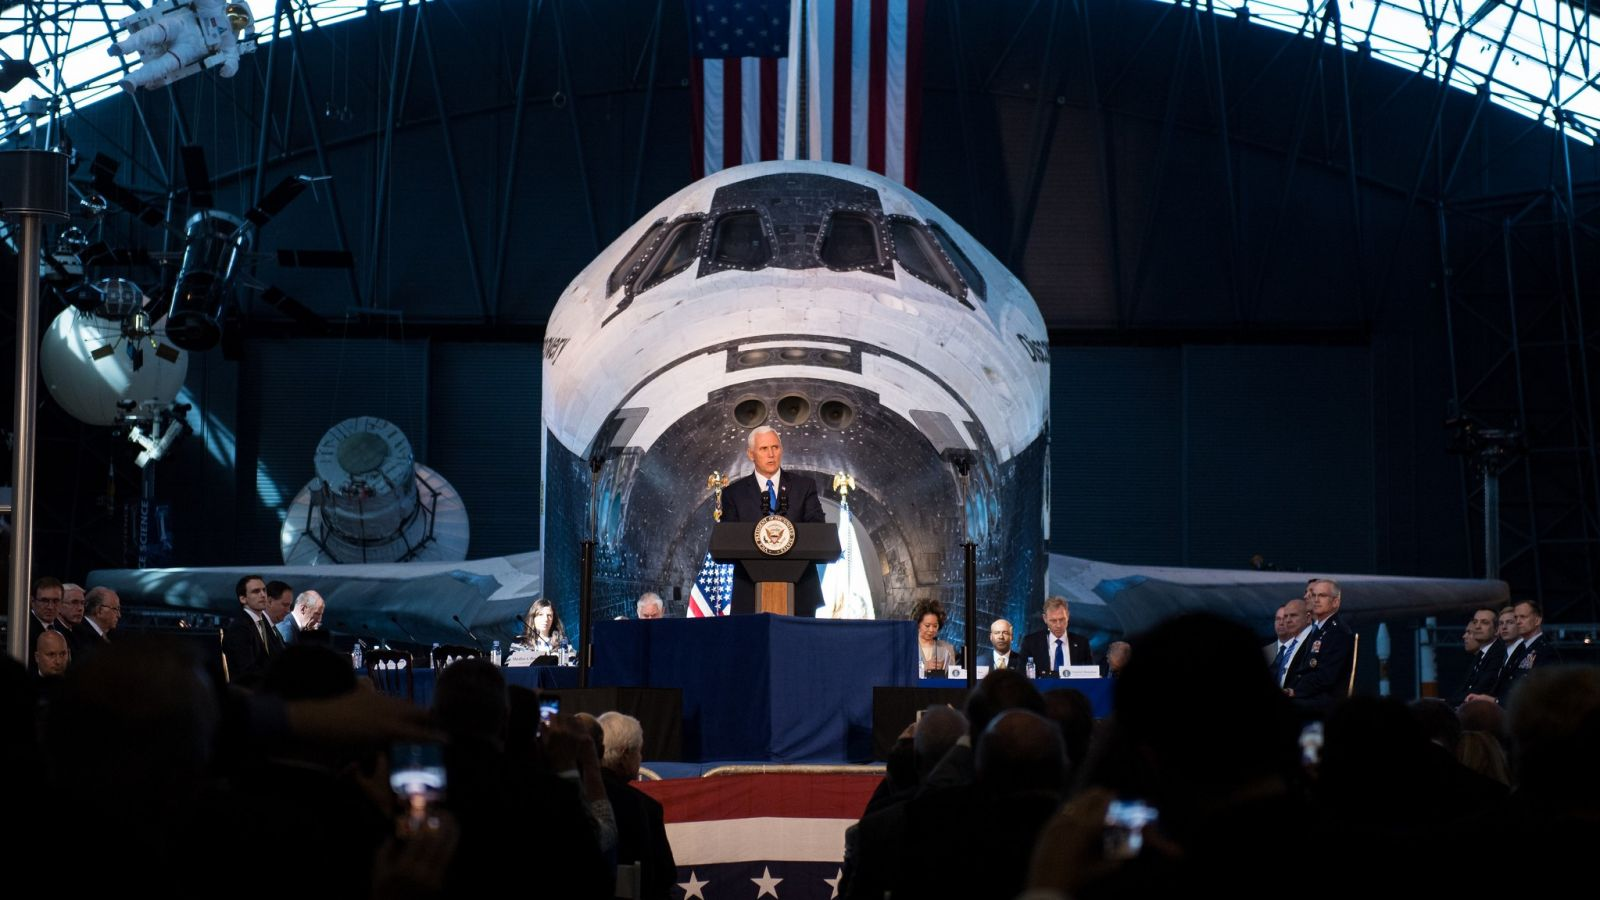 Vice President Pence deliveres opening remarks during the National Space Council's first meeting Oct. 5, 2017, in front of Space Shuttle Discovery at the National Air and Space Museum's Udvar-Hazy Center in Chantilly, Virginia. Photo Credit: Joel Kowsky / NASA